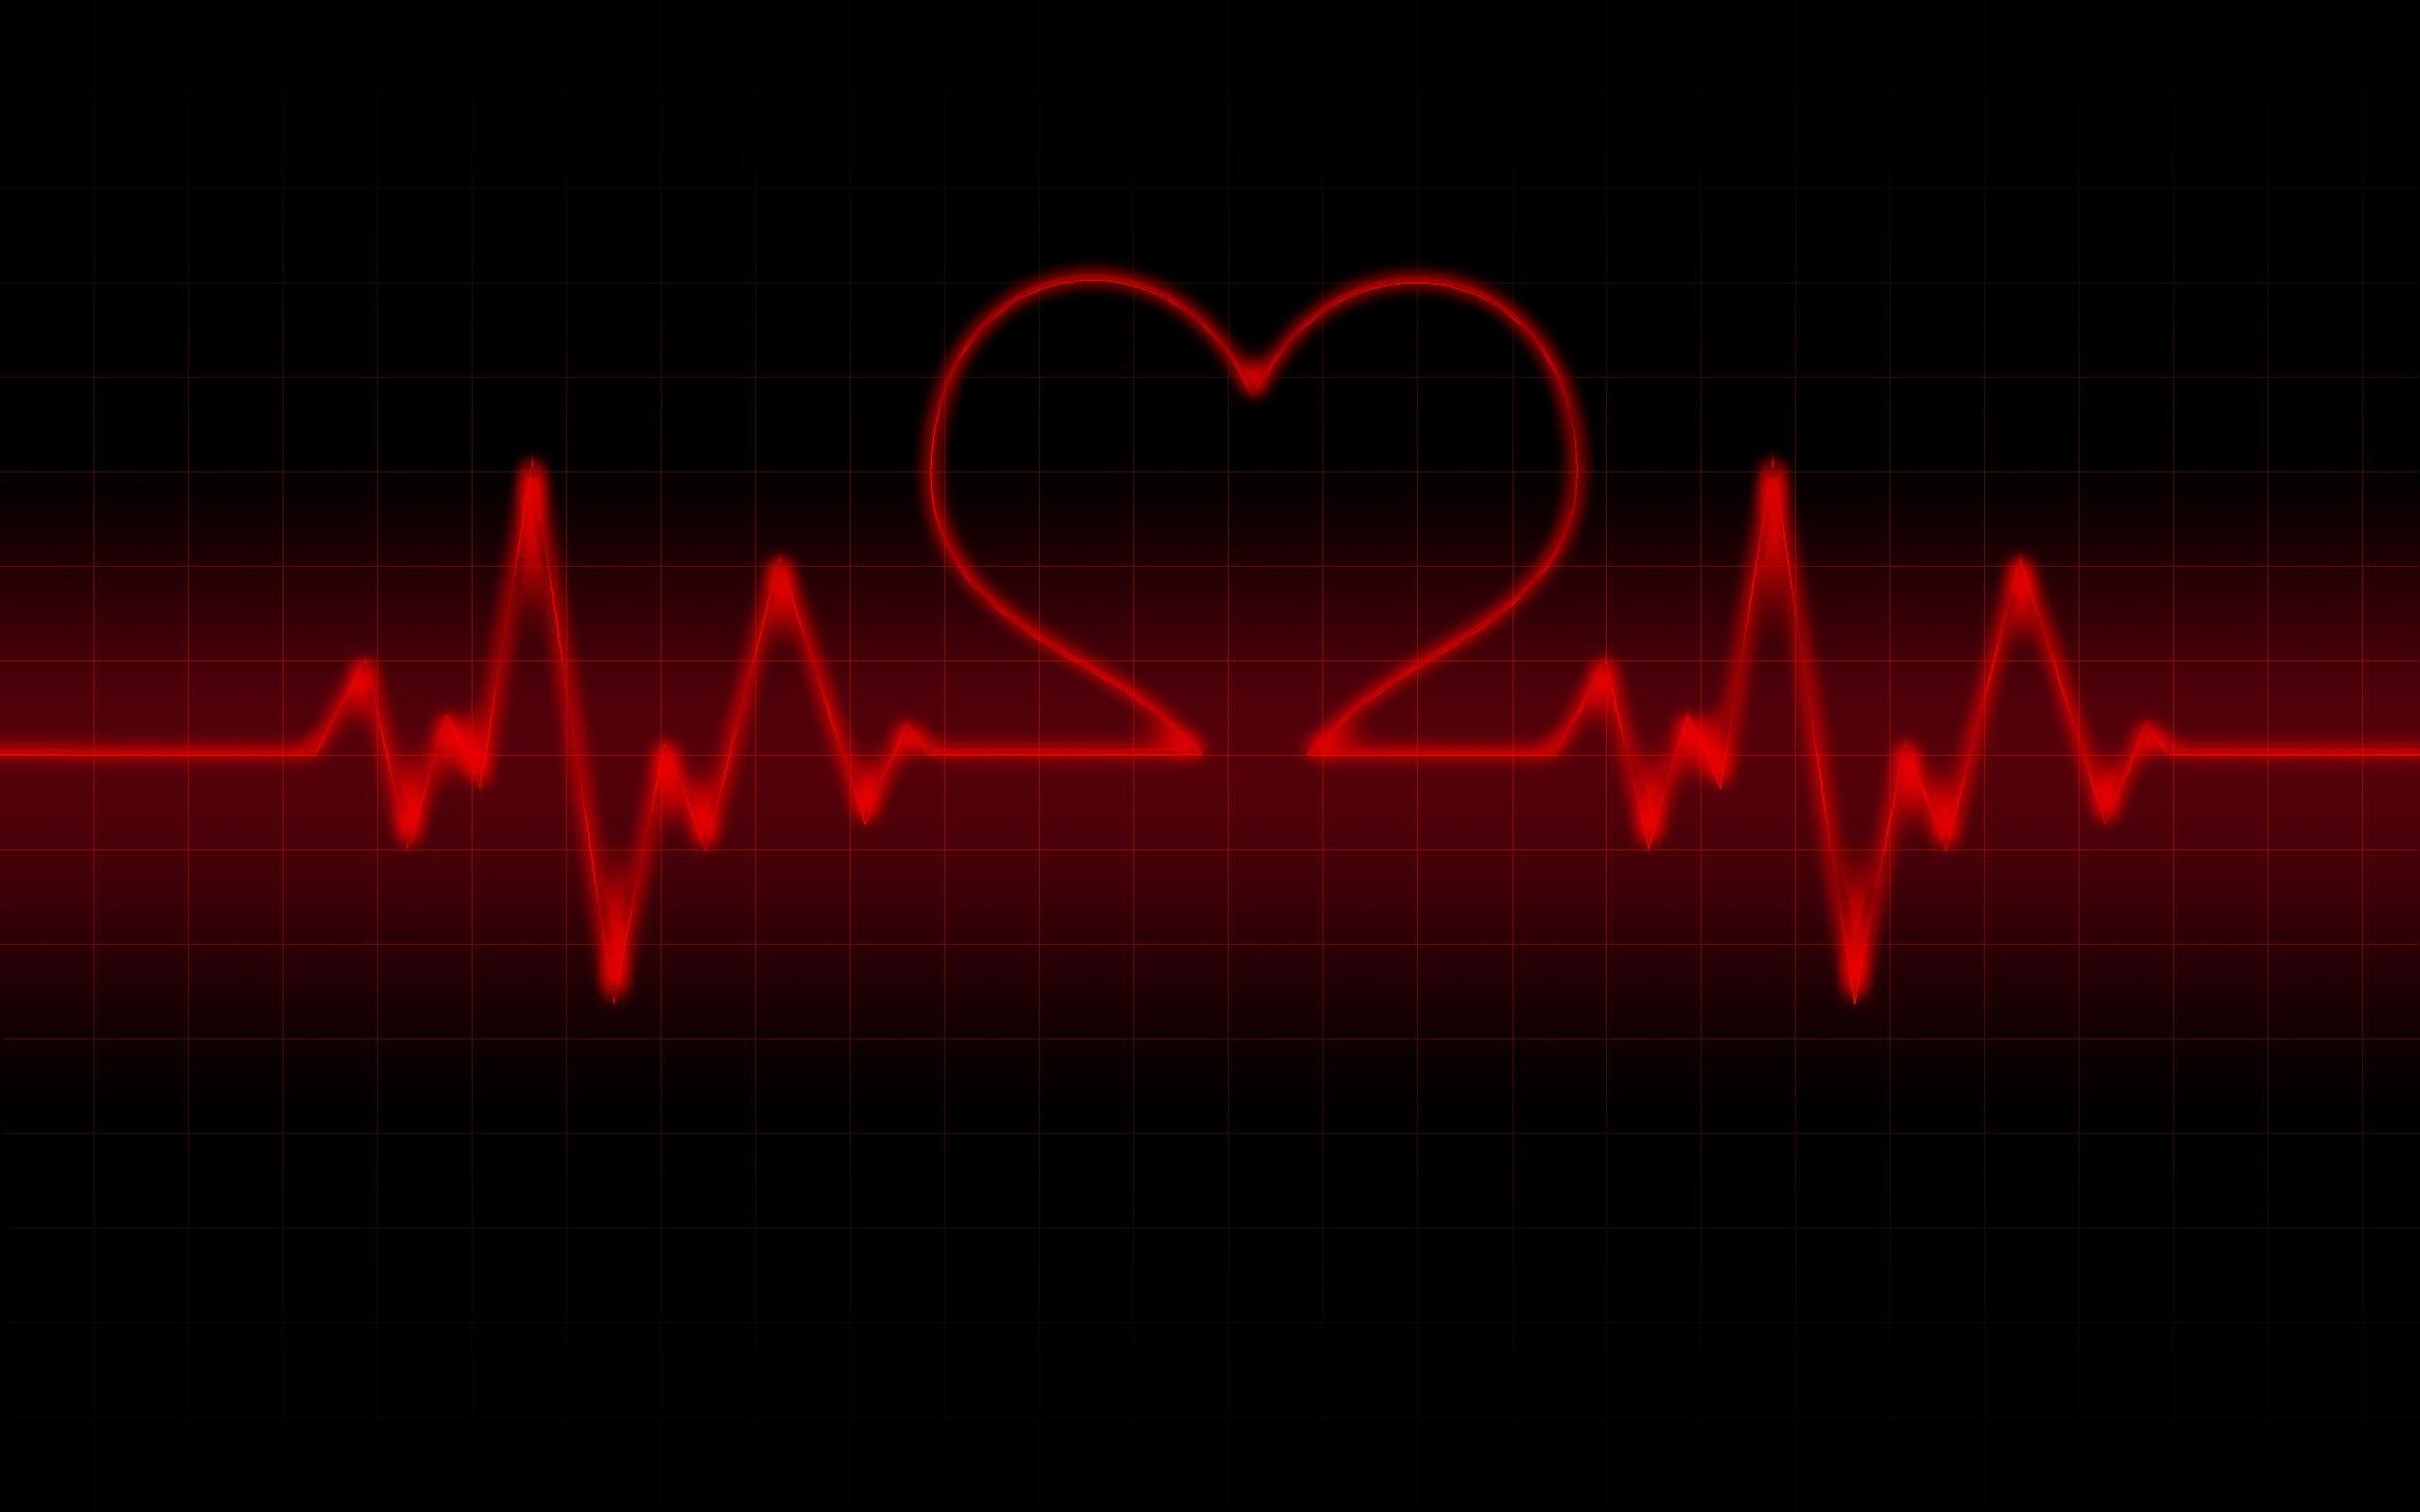 Black Red Love Wallpaper : life line heart rate Wallpaper Valentine Day Red And Black Wallpapers Valentine s Day ...